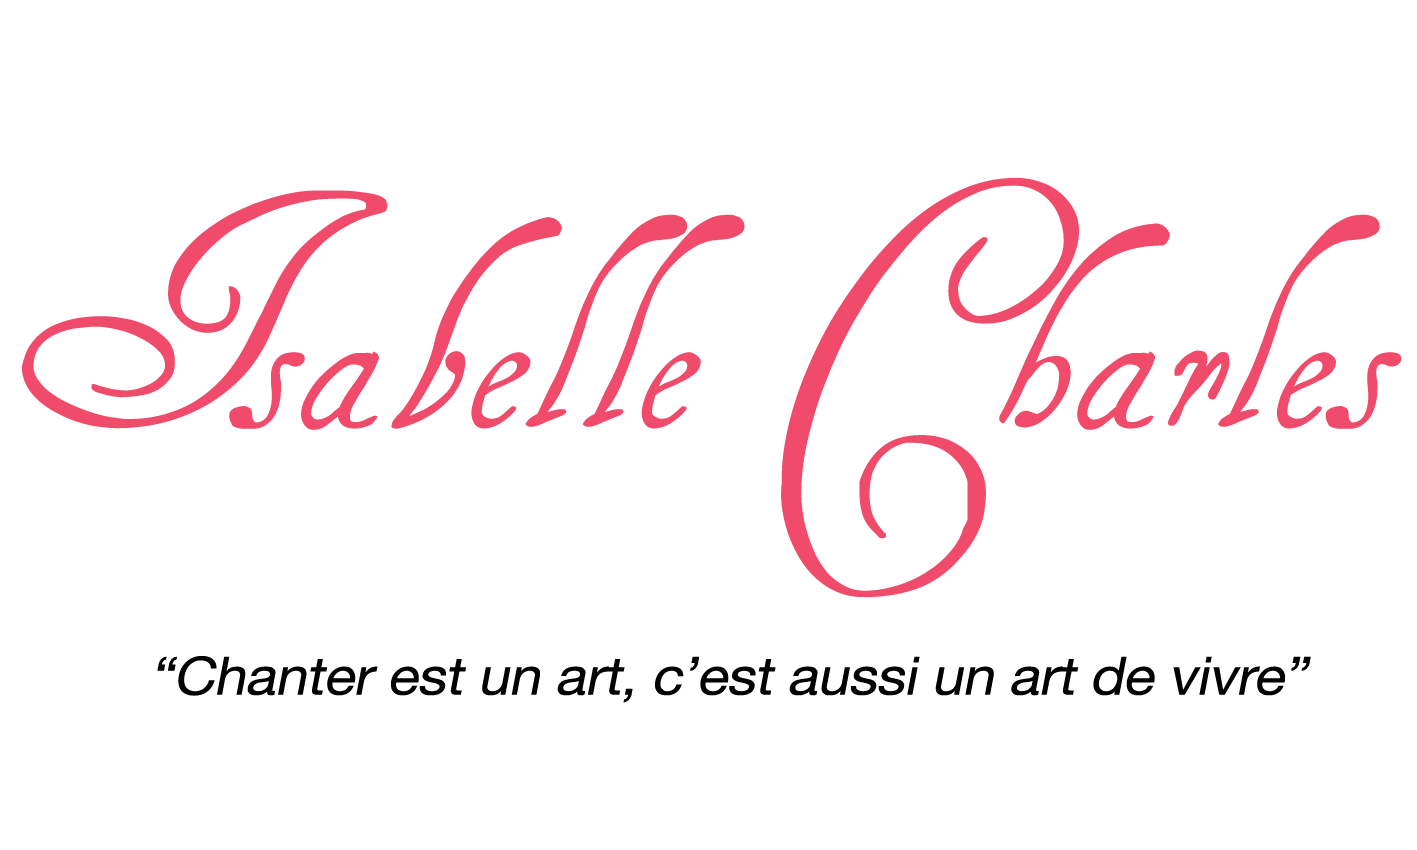 Isabelle Charles